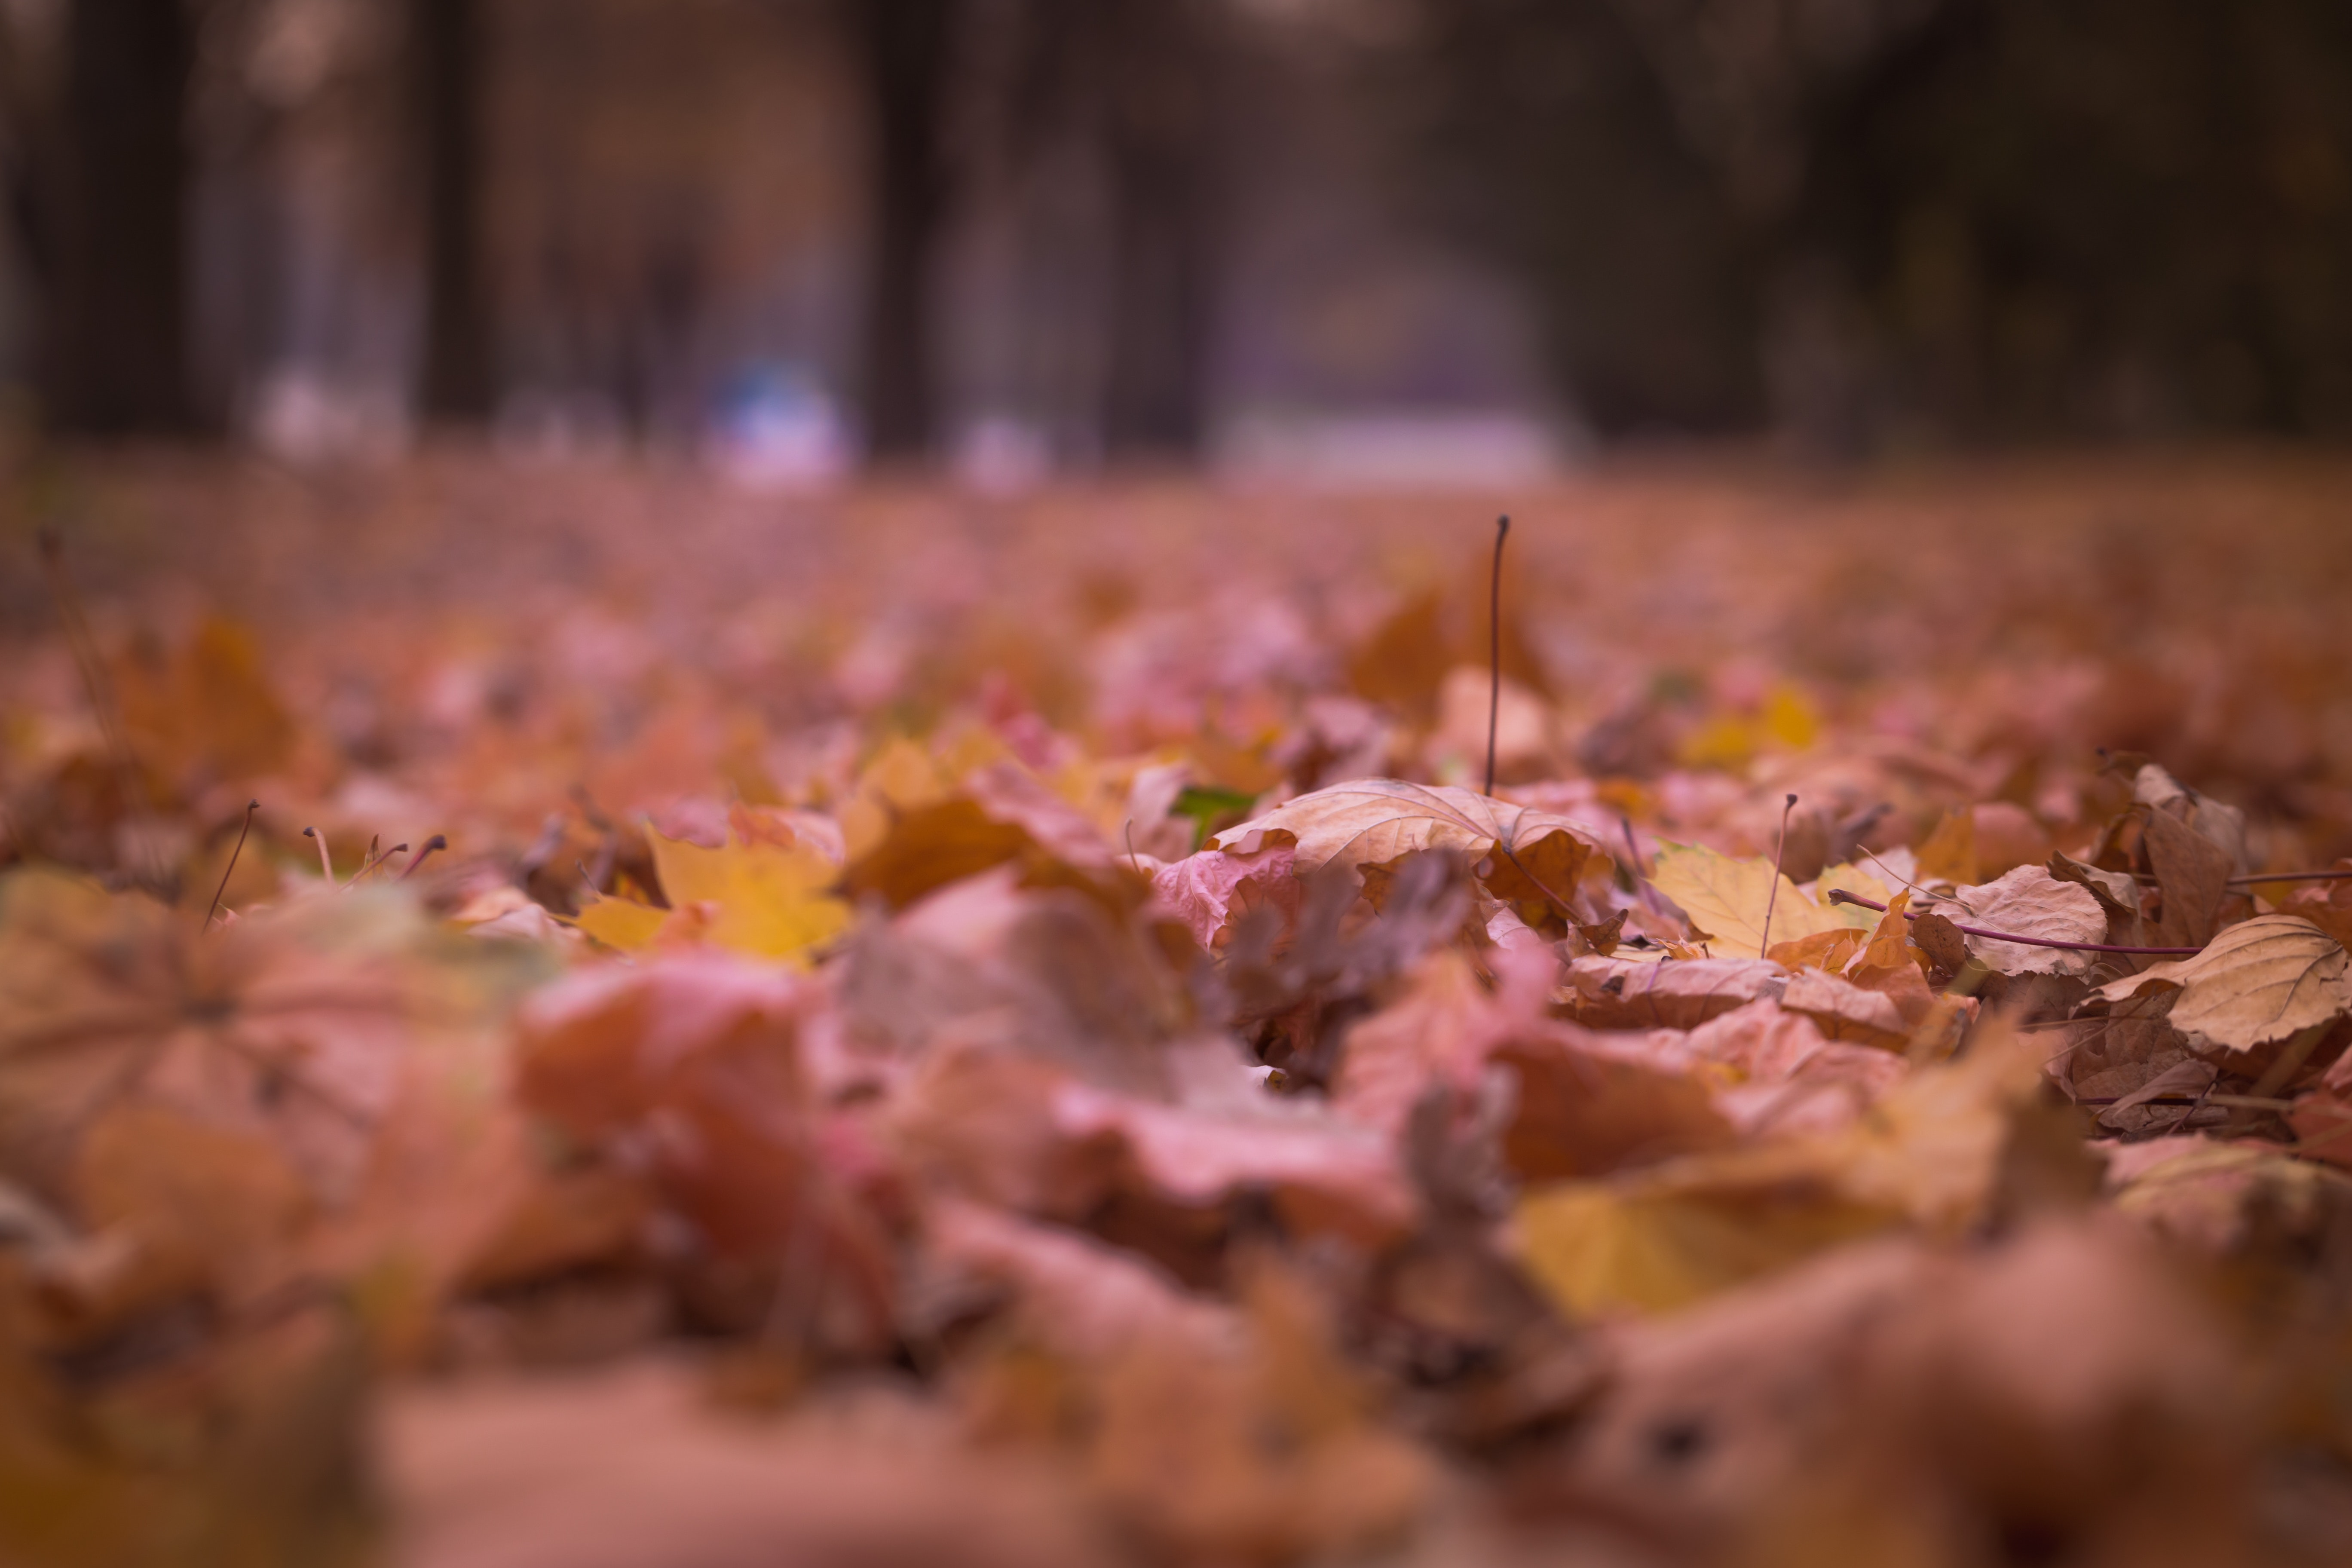 Withered Leaves on Floor Focus Photography, Autumn, Blur, Color, Fall, HQ Photo